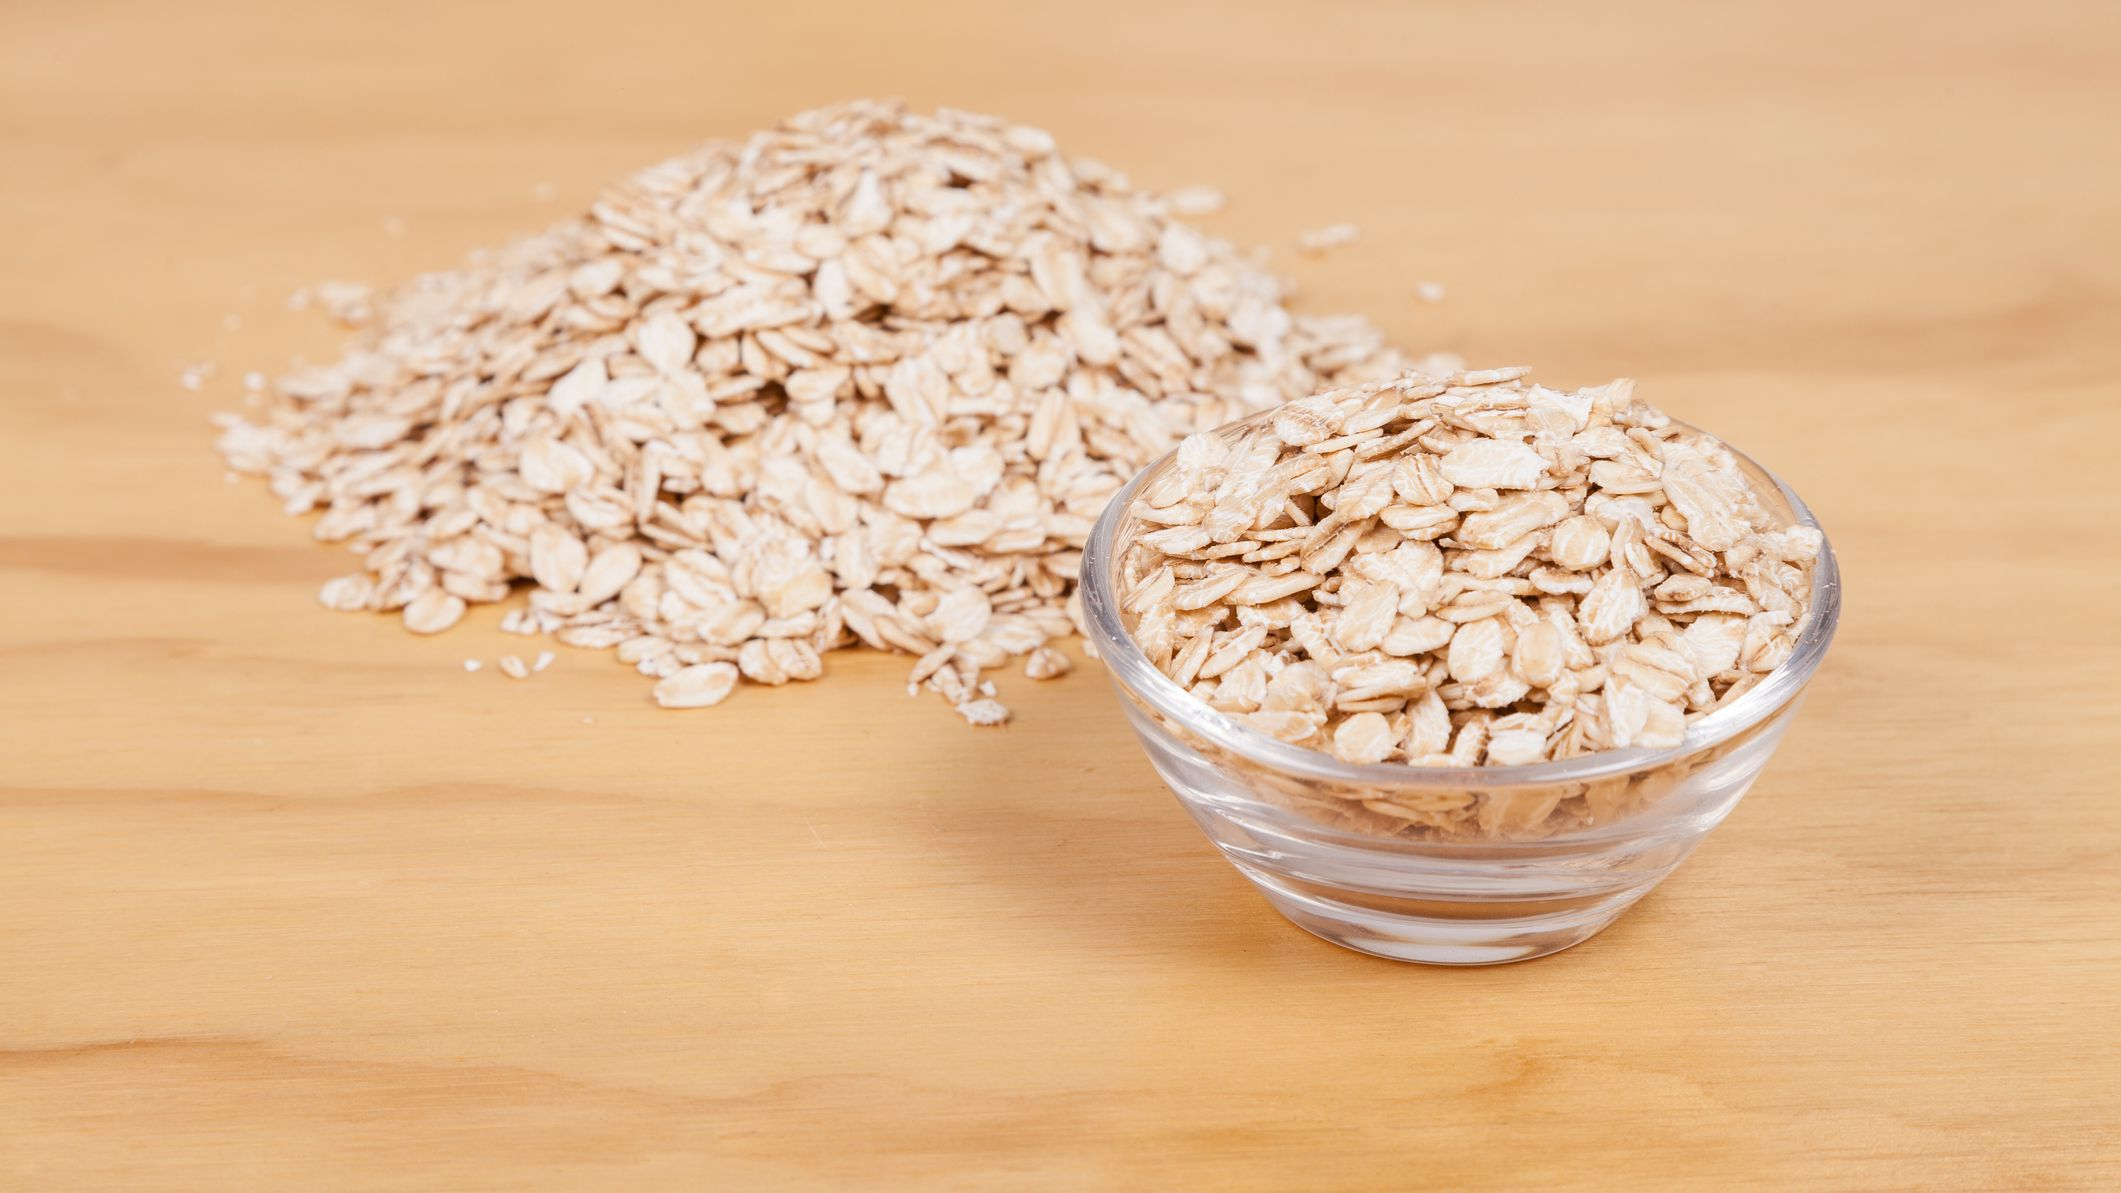 Storage and Cooking Tips for Oats and Oatmeal